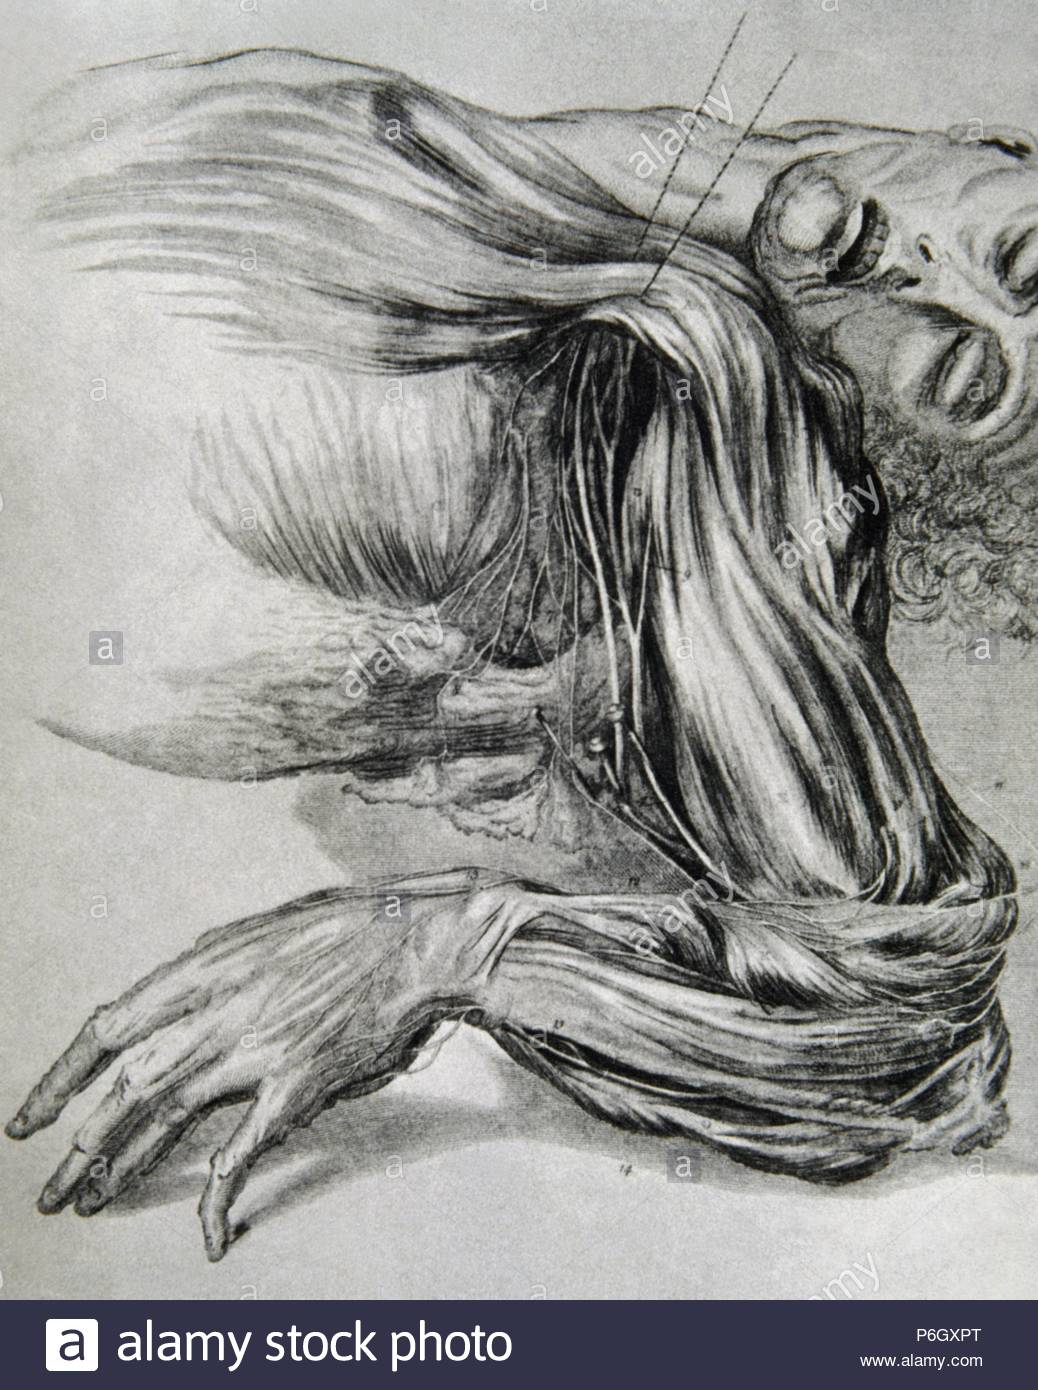 History Of Medicine Drawing From A Study Of Anatomy Human Muscles